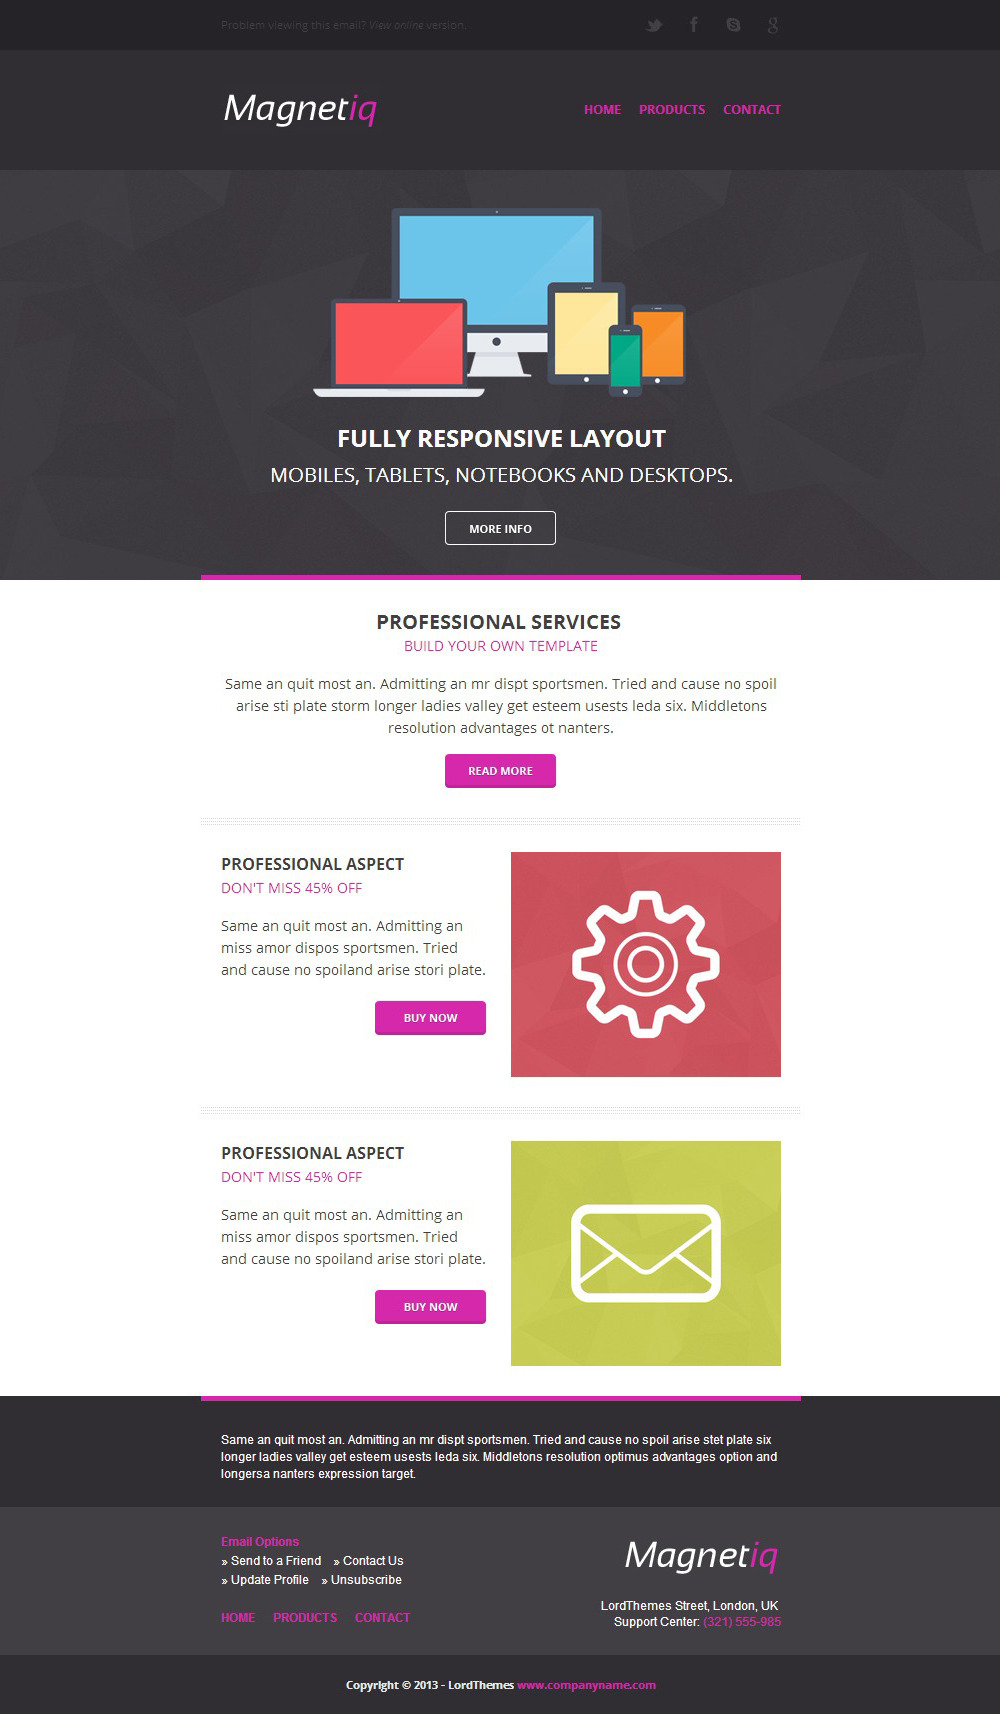 Magnetiq - Responsive Email Template